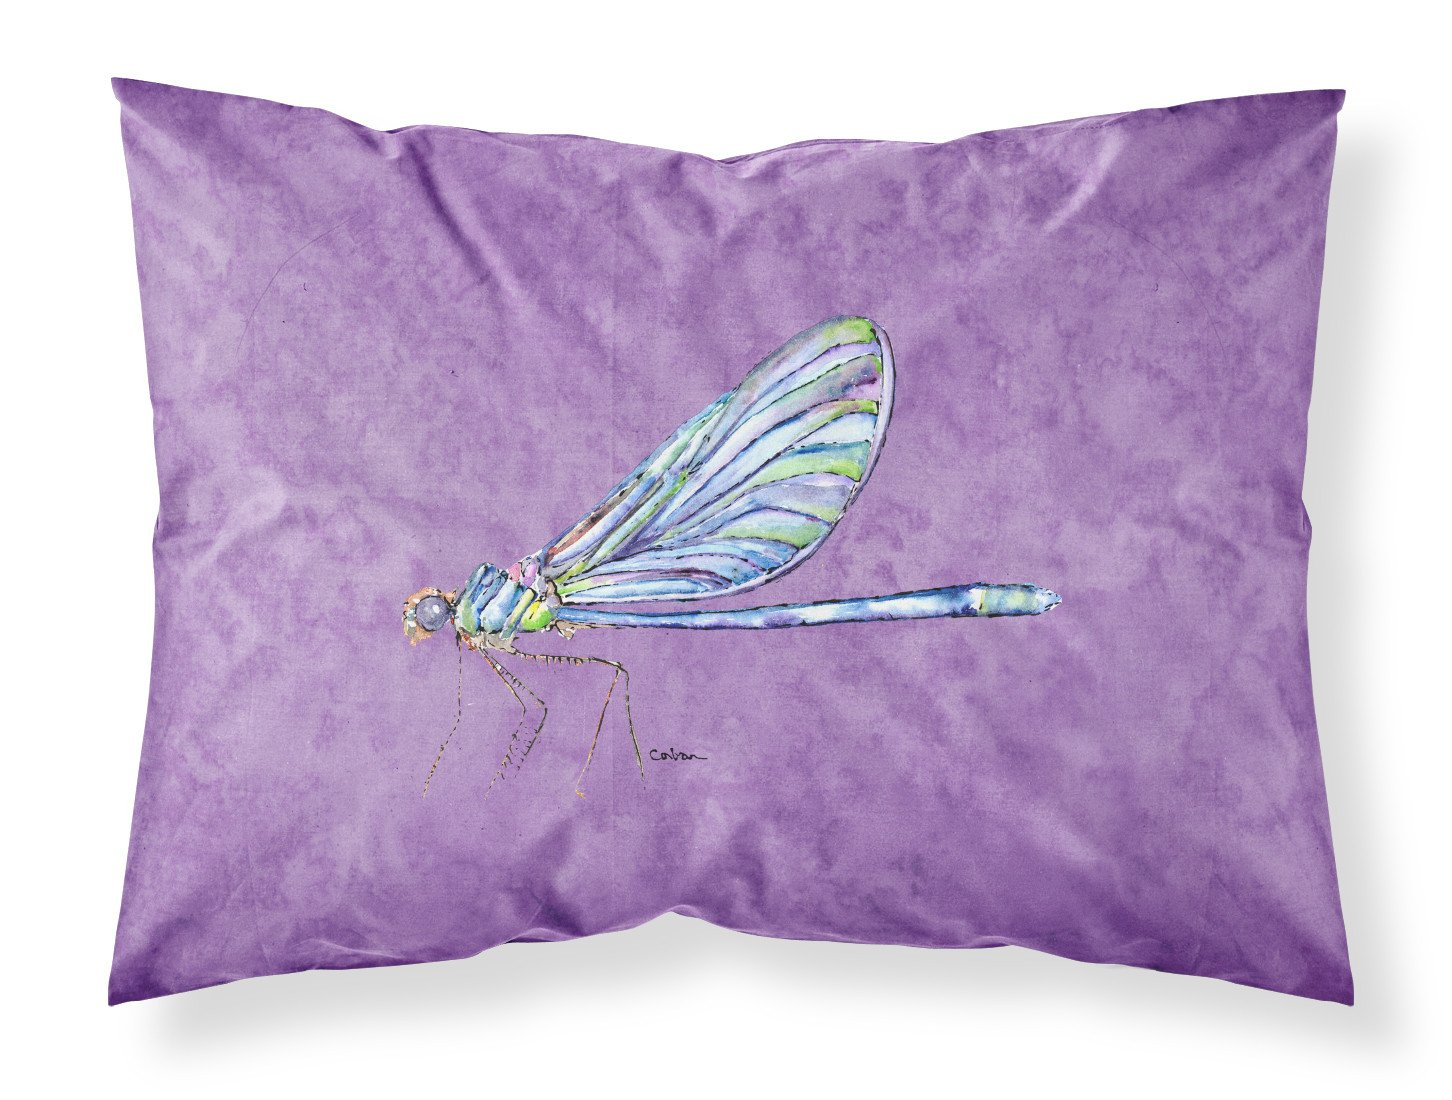 Buy this Dragonfly on Purple Moisture wicking Fabric standard pillowcase